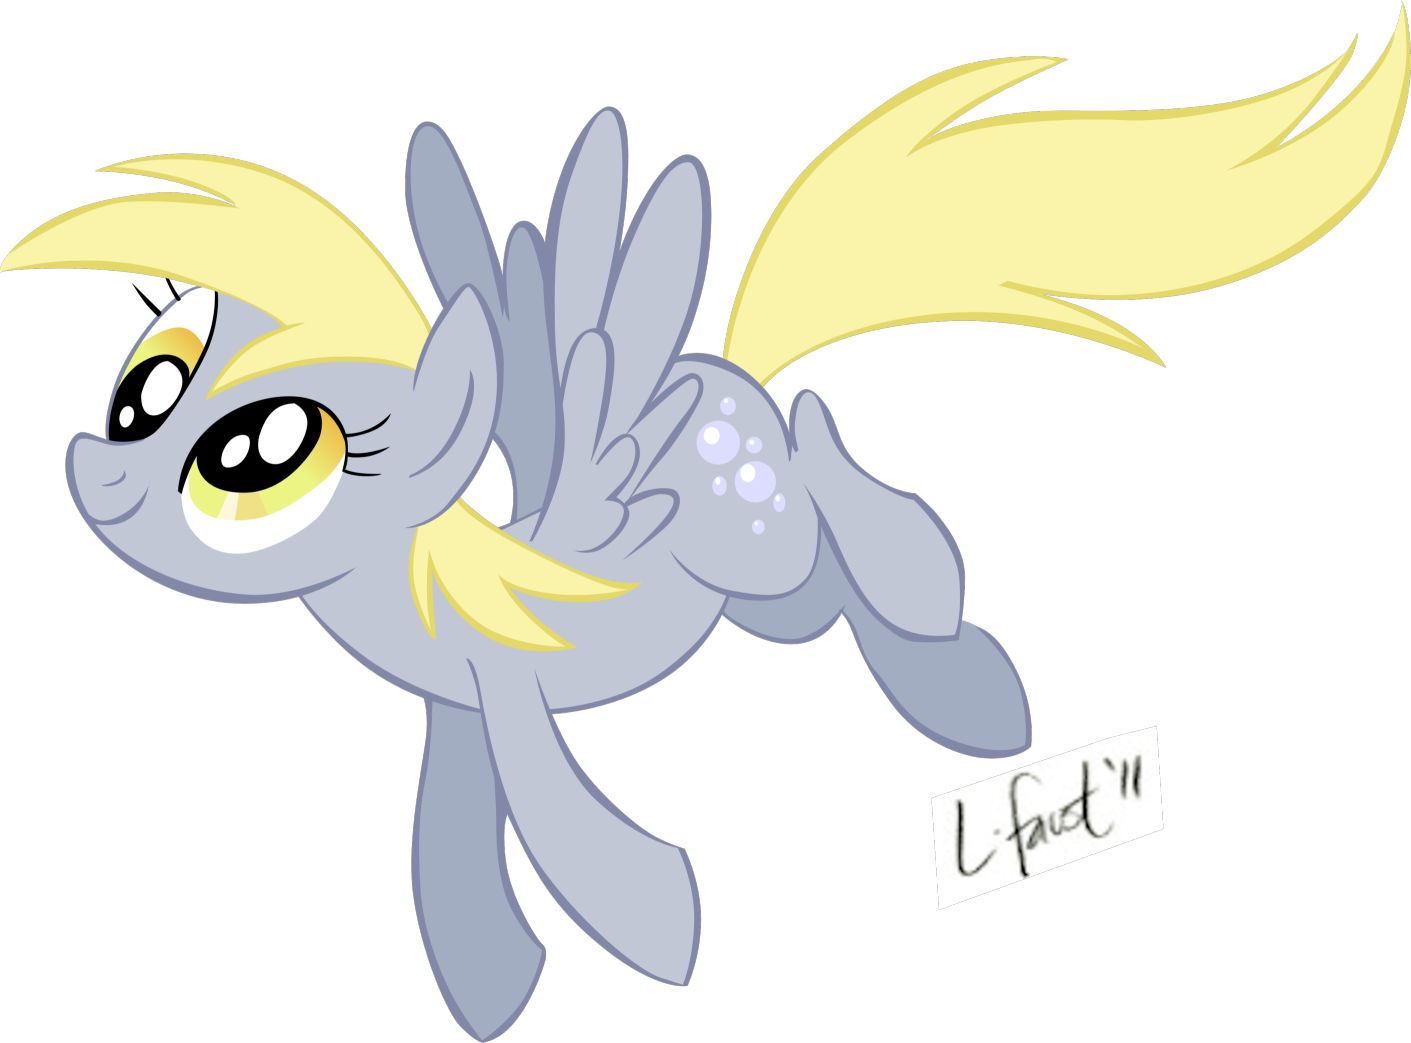 derpy hooves fan page